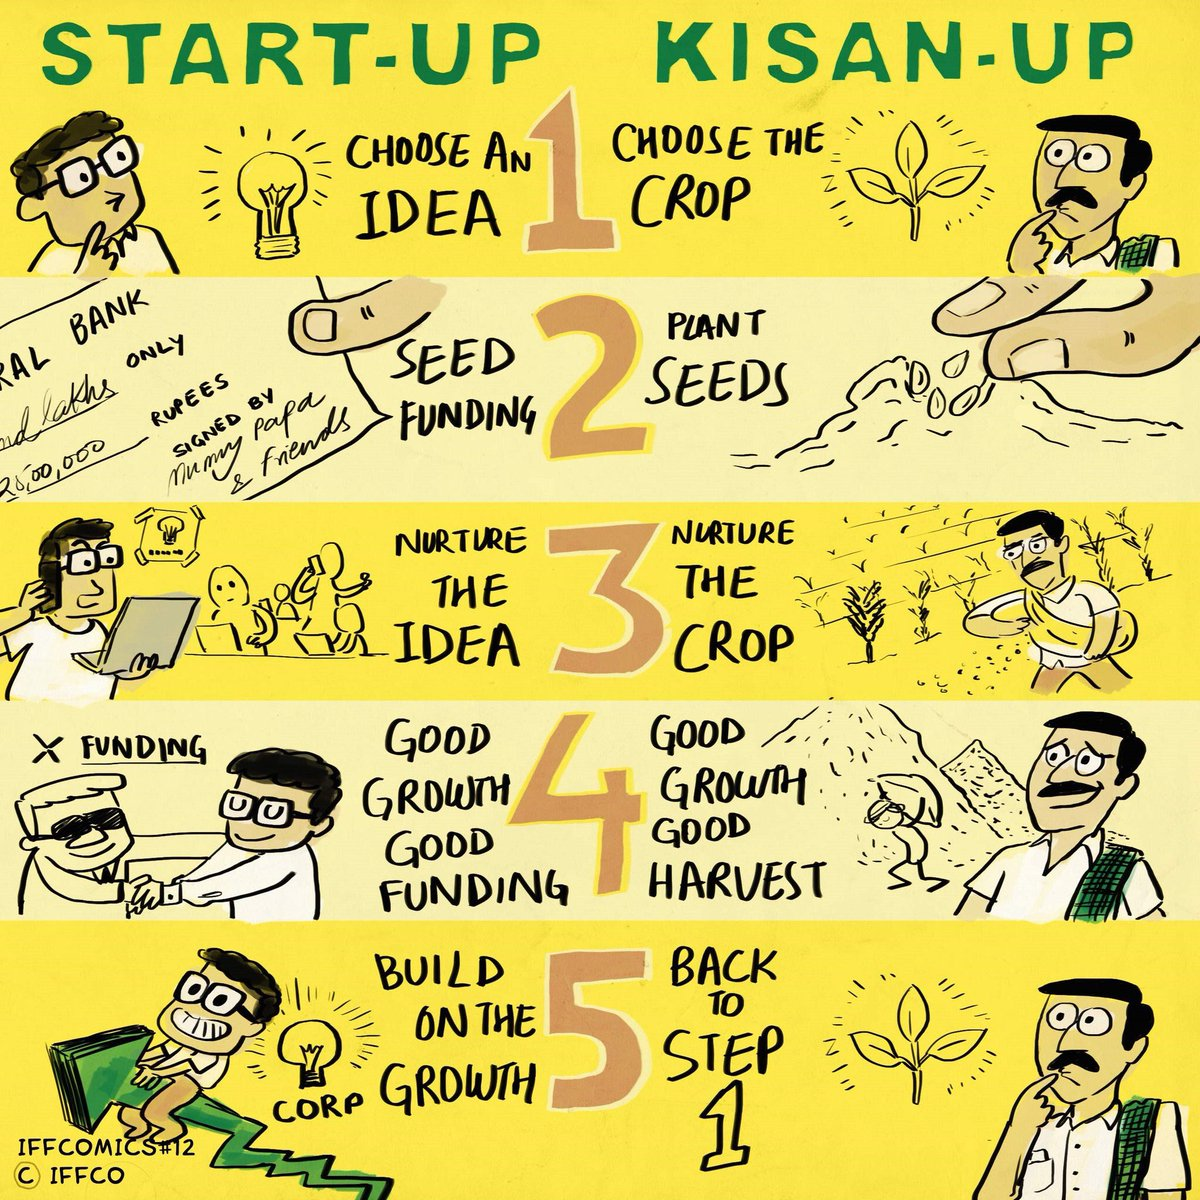 For our #farmers, every season is a new #startup. They choose an idea of growing a crop to planting good quality seeds and than nurturing it with plant nutrients & protection from threats. They aim for a good growth and bumper harvest. It's all about #Kisan. #ThankYouKisan